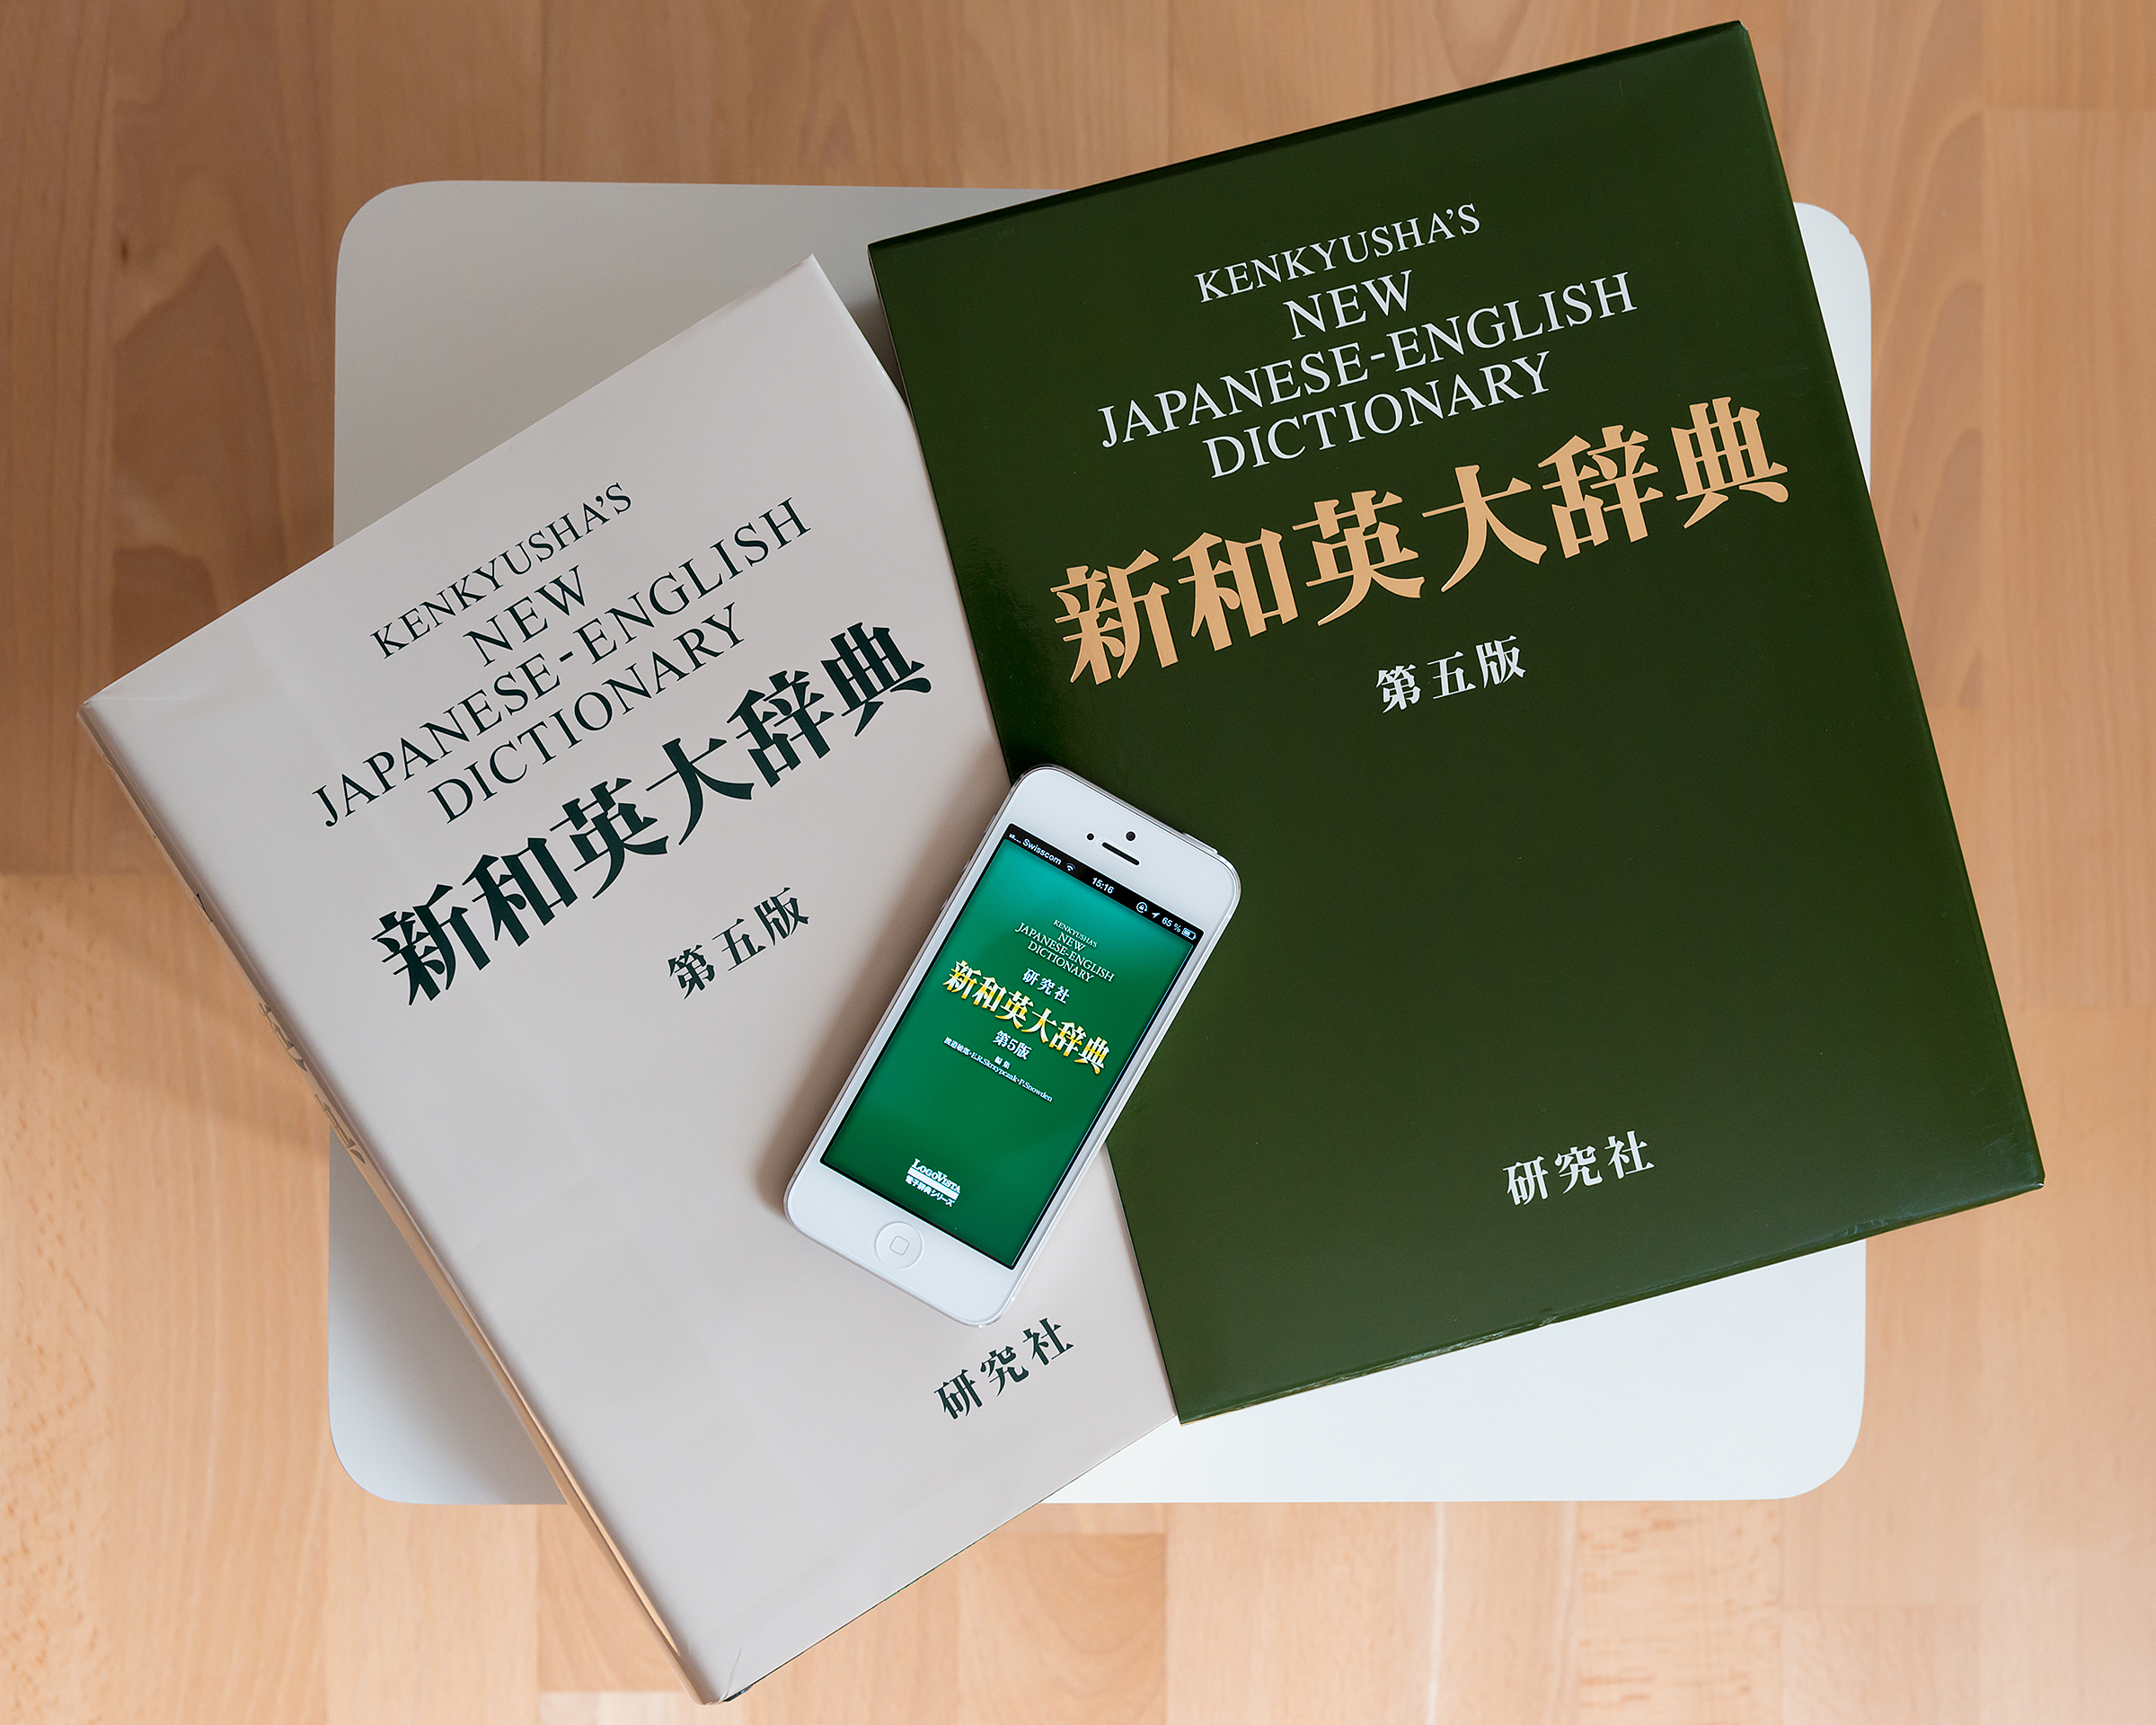 Japanese Language Dictionary Free Download - pdfjr's diary